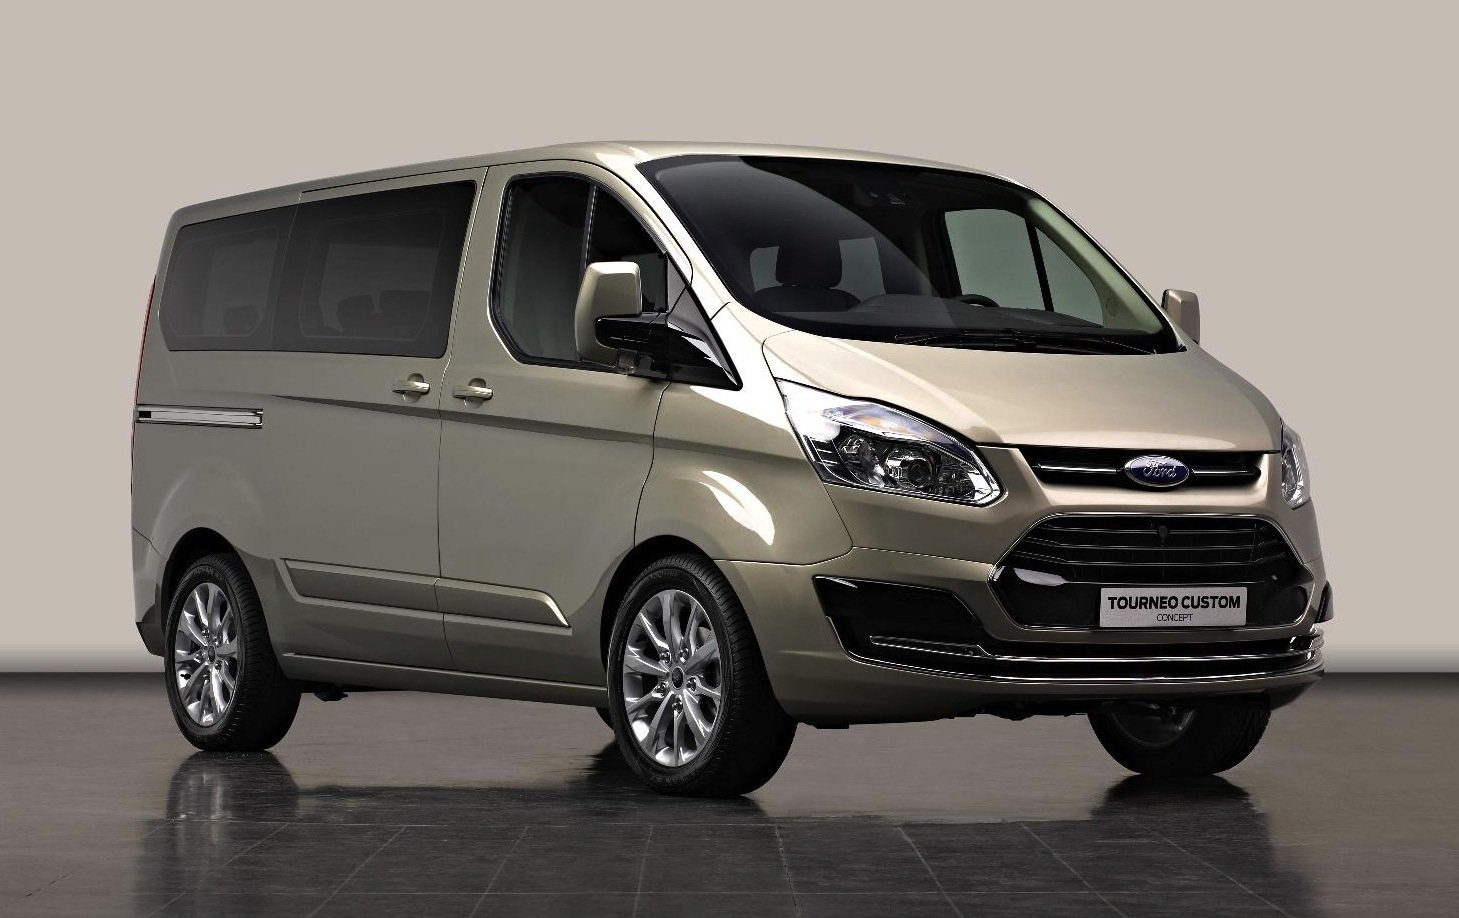 New Ford Transit previewed by Tourneo Custom Concept - Photos (1 of 6)